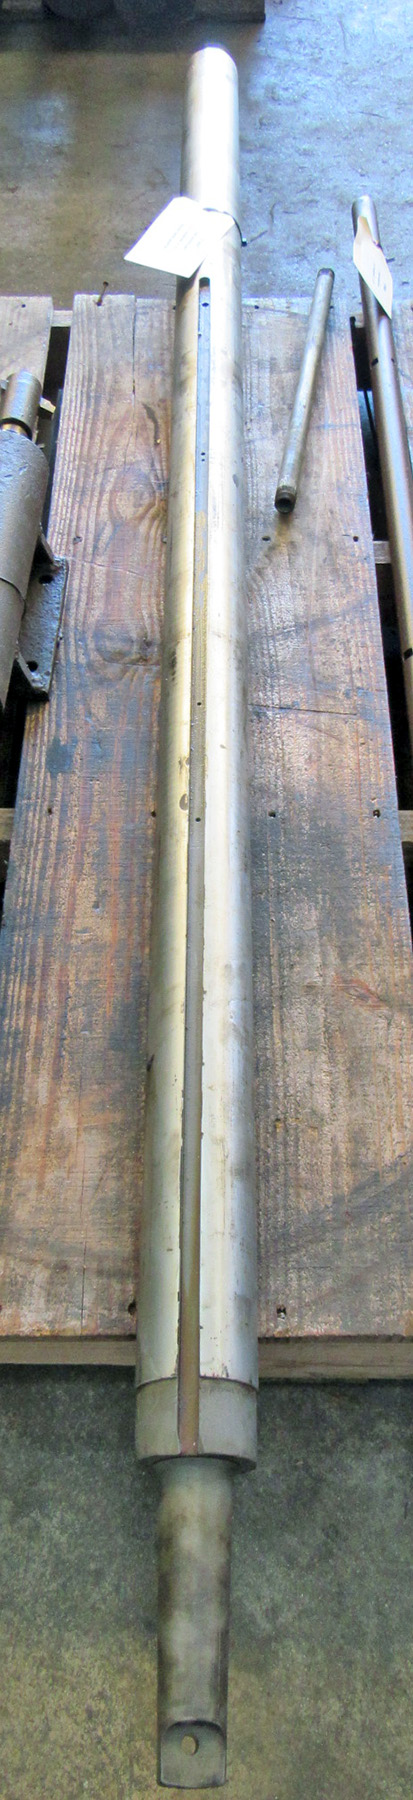 "USED, 3-1/2"" X 72"" LINE BORING BAR WITH MORSE TAPER ADAPTER"